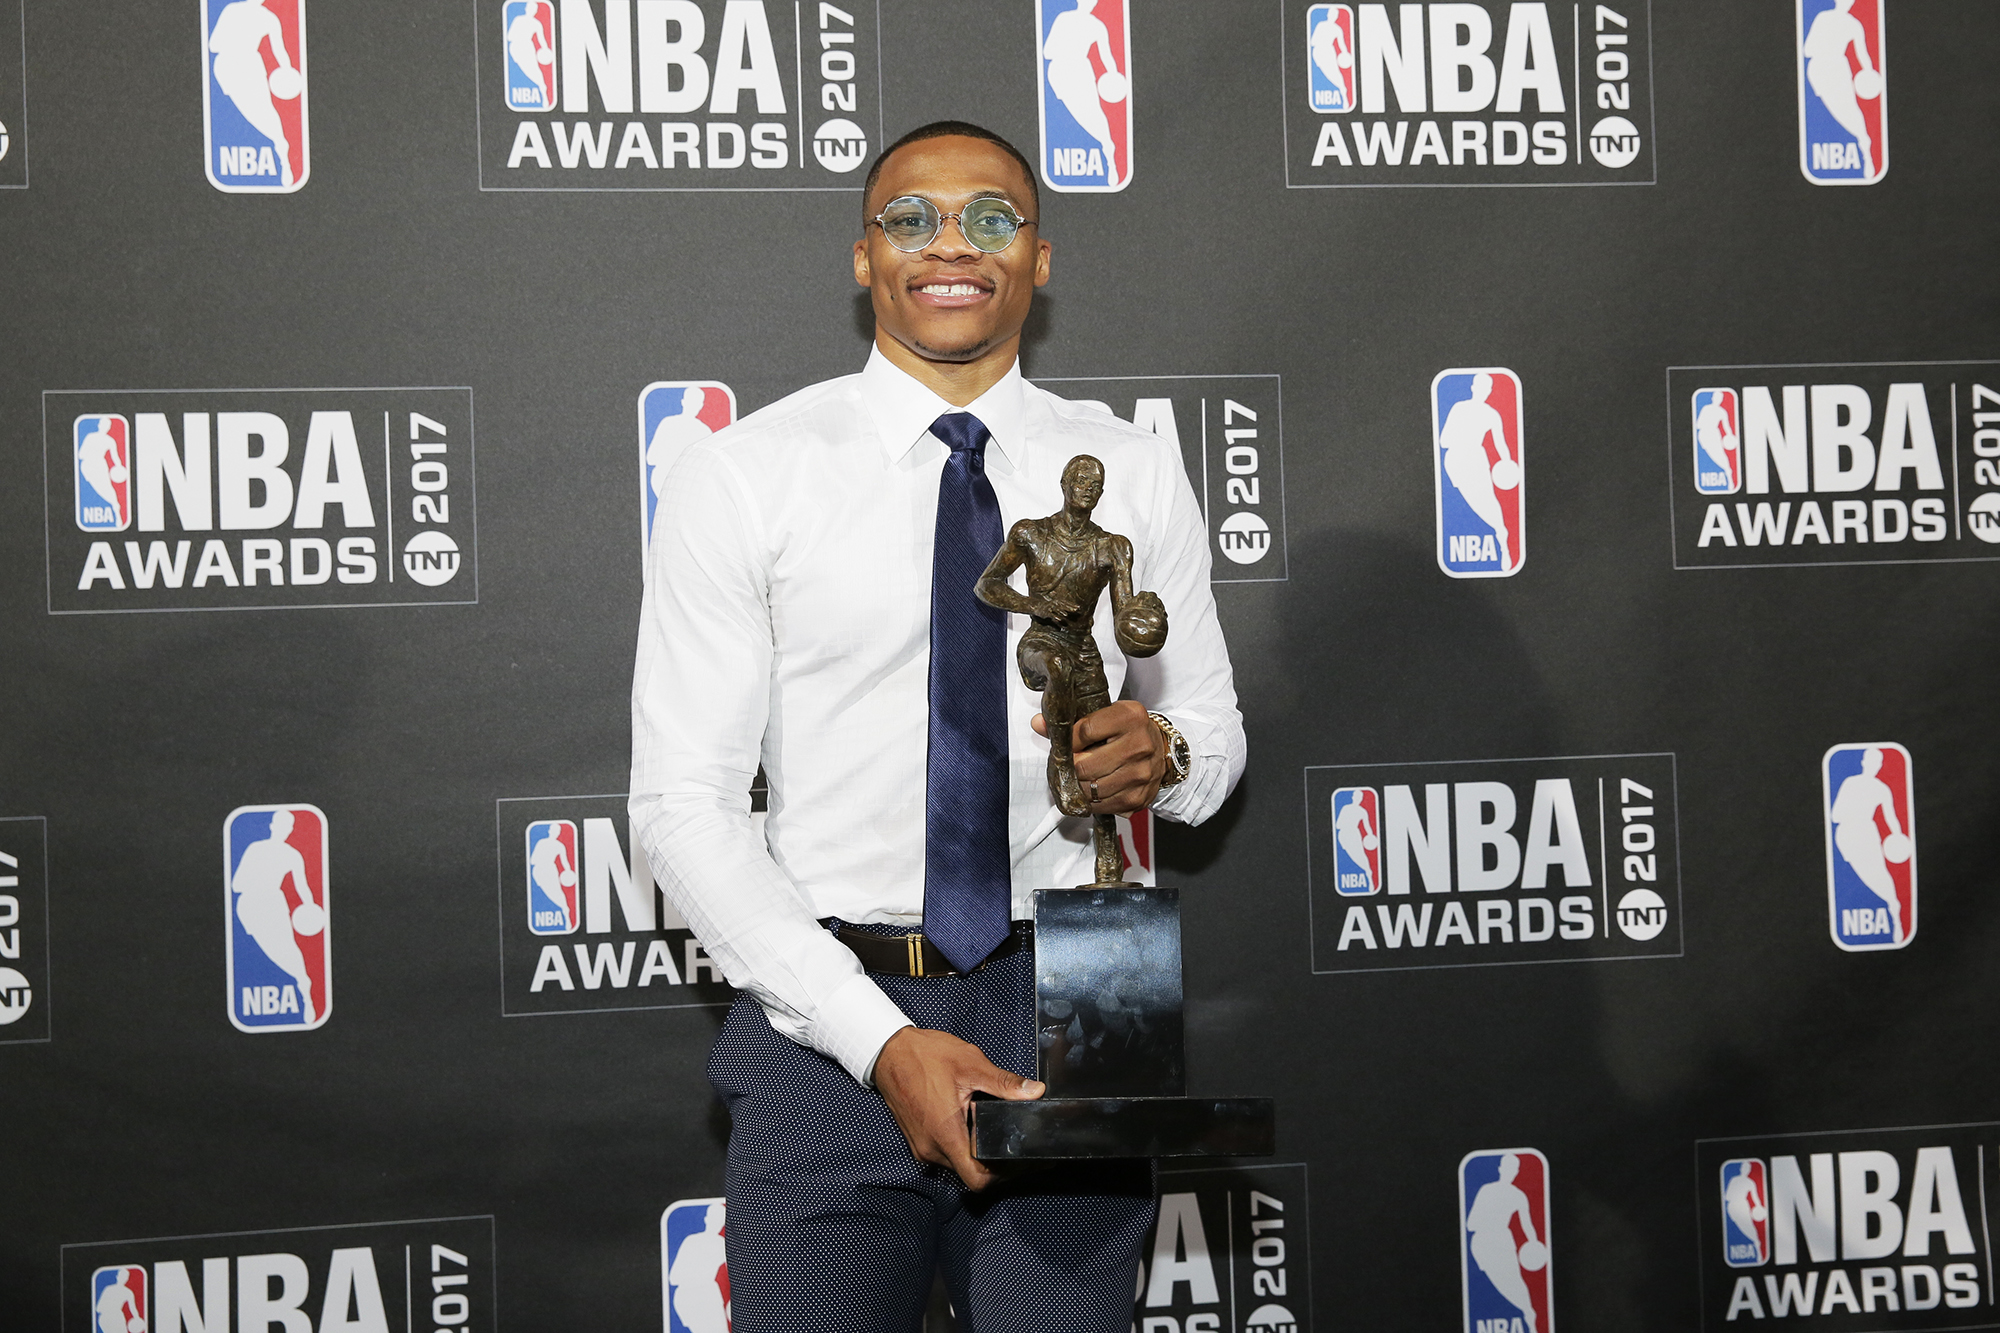 Russell Westbrook of the Oklahoma City Thunder after winning the Most Valuable Player of the Year award at the 2017 NBA Awards Show, on June 26, 2017 in New York City.